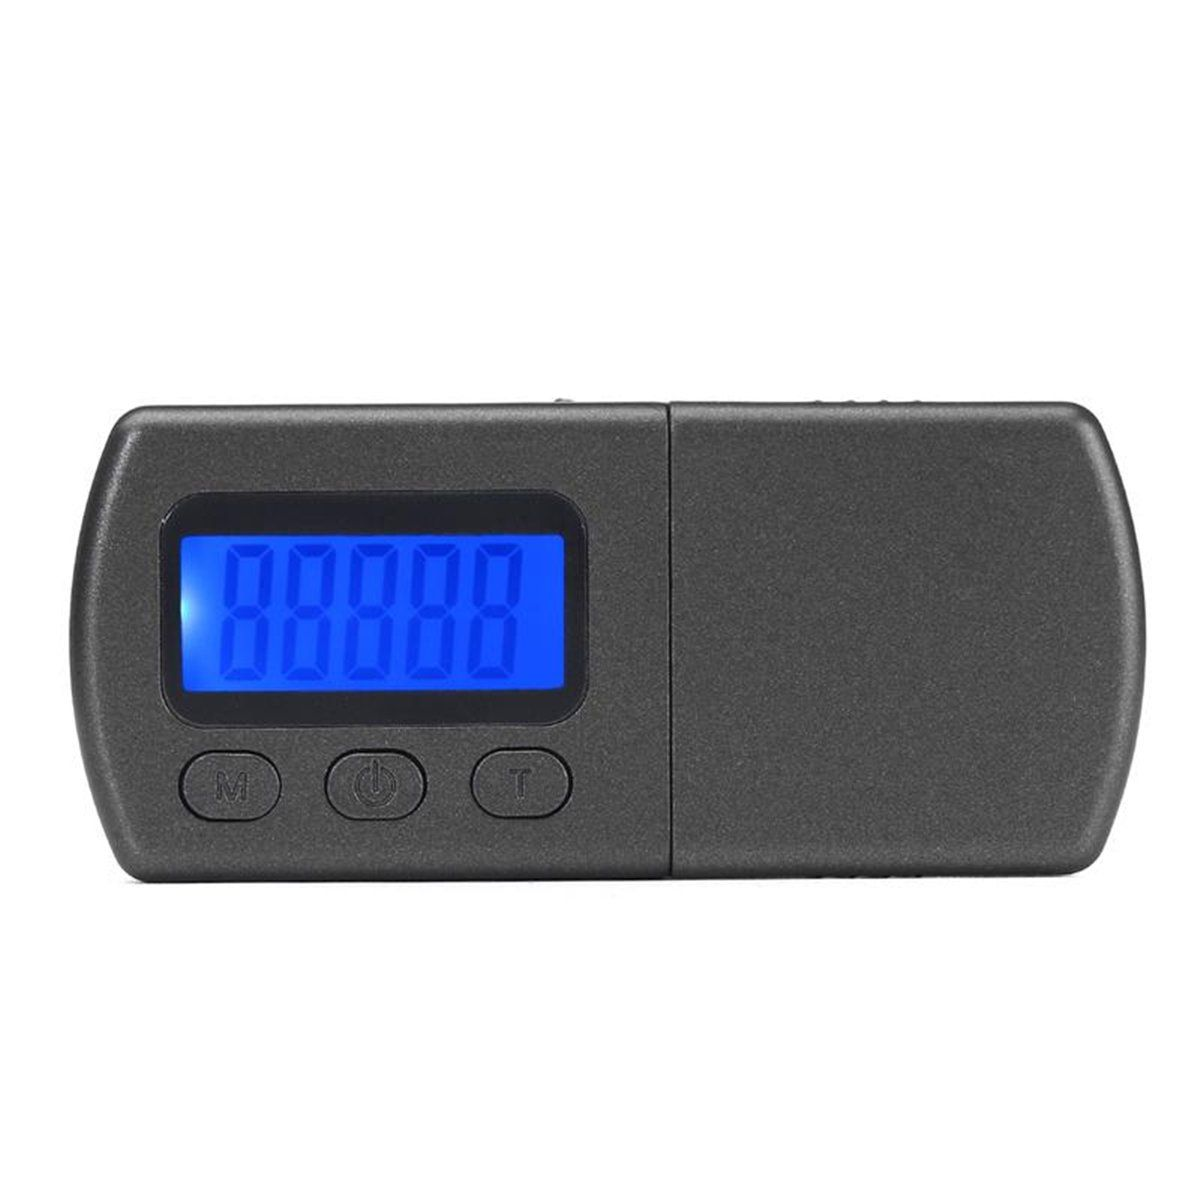 Black Digital Turntable Stylus Force Scale Gauge LED Screen Electronic Tester